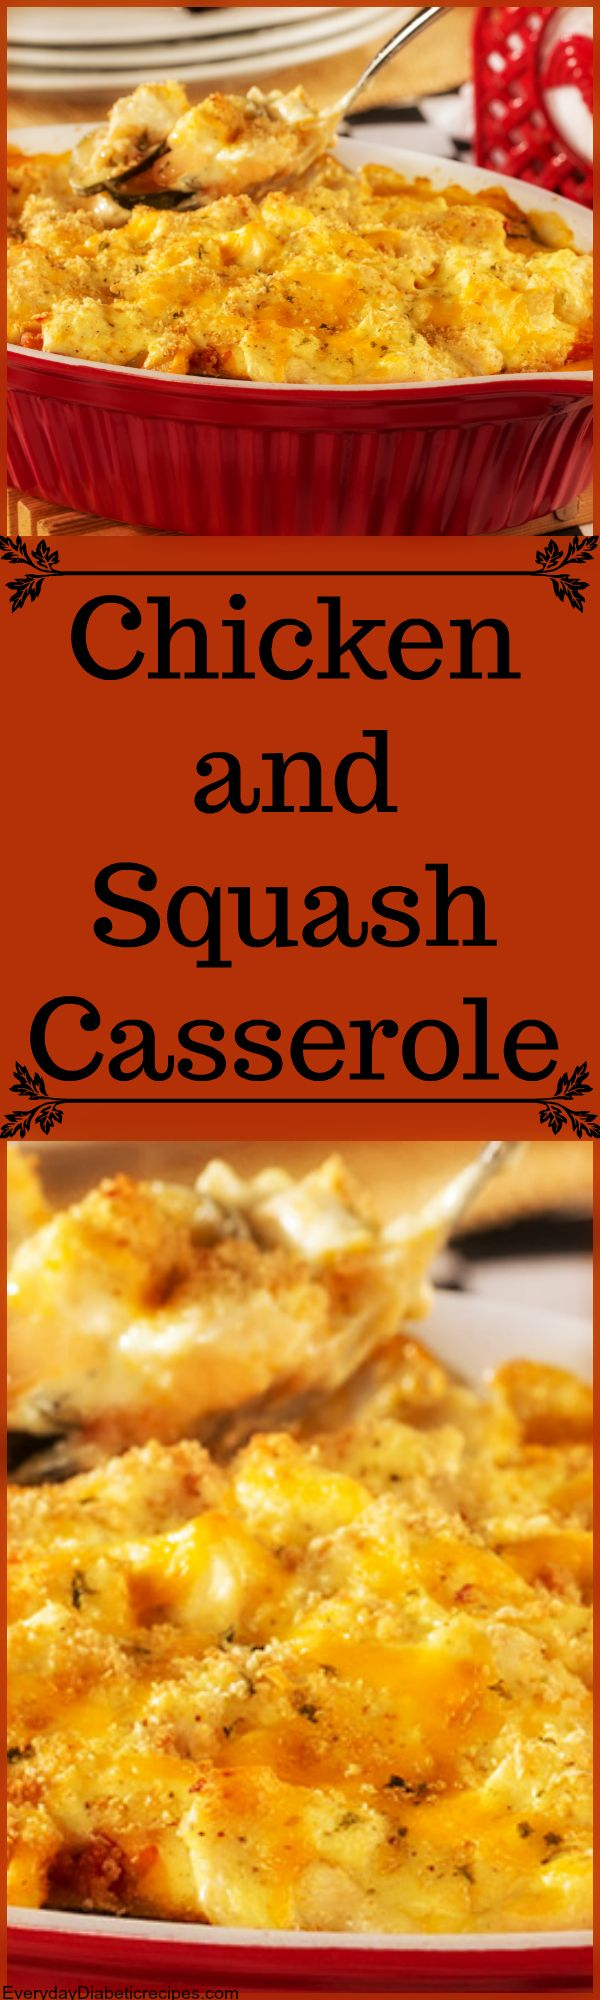 Casseroles are always perfect to warm you up in the cold weather! #diabeticfriendly #diabetes #Diabeticdiet #EverydayDiabeticRecipes #DiabeticRecipes #ChickenCasserole